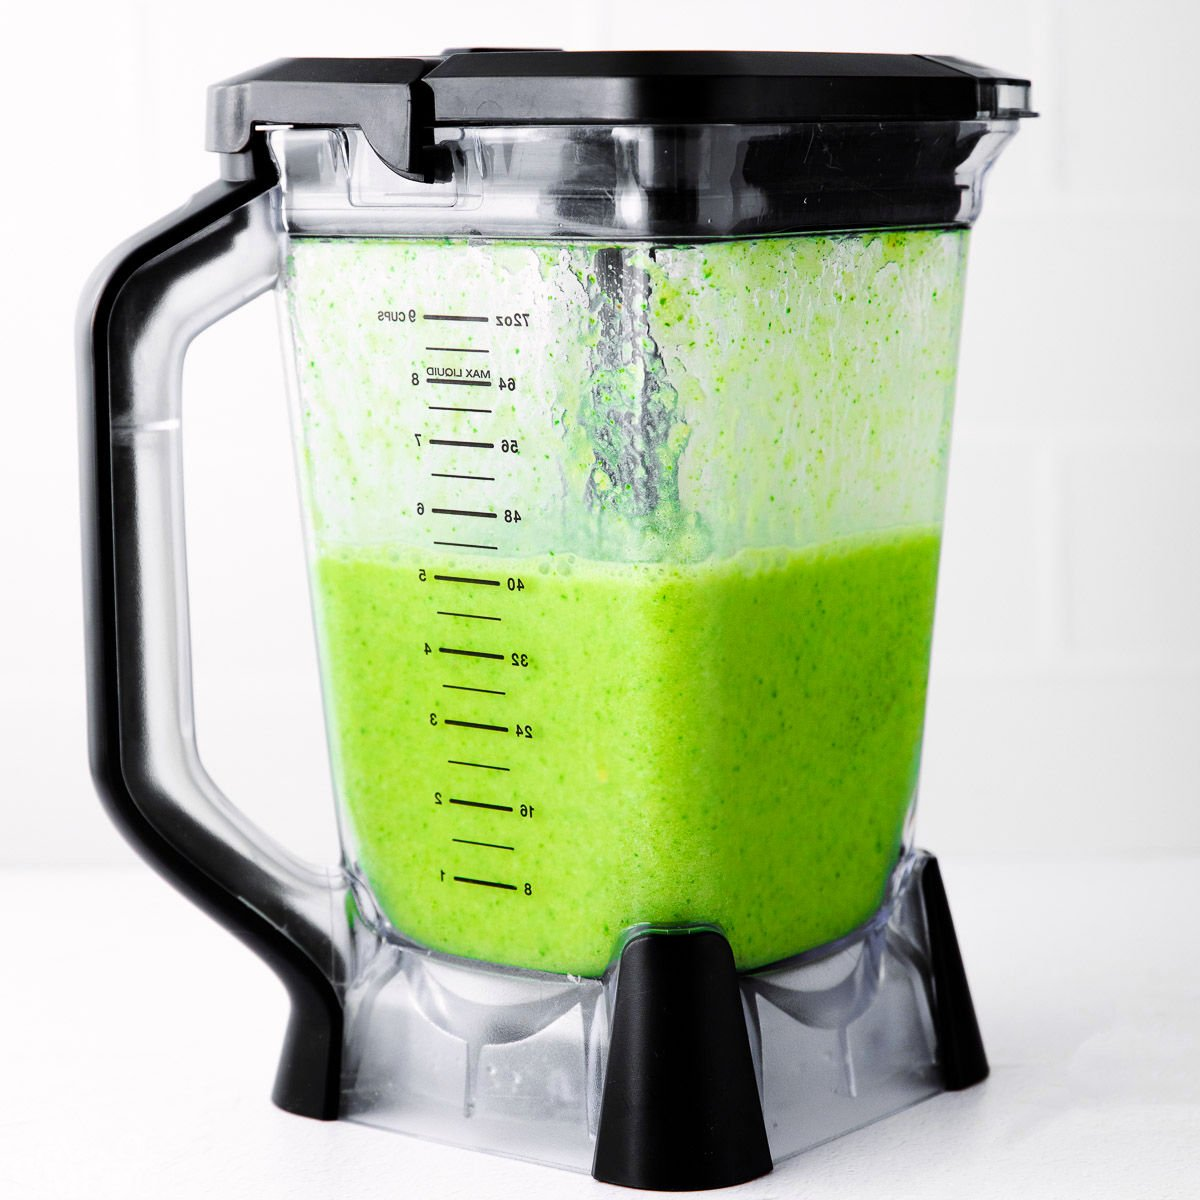 green smoothie in blender with black detailing. the color is bright and vibrant and the smoothie is ready to be served.